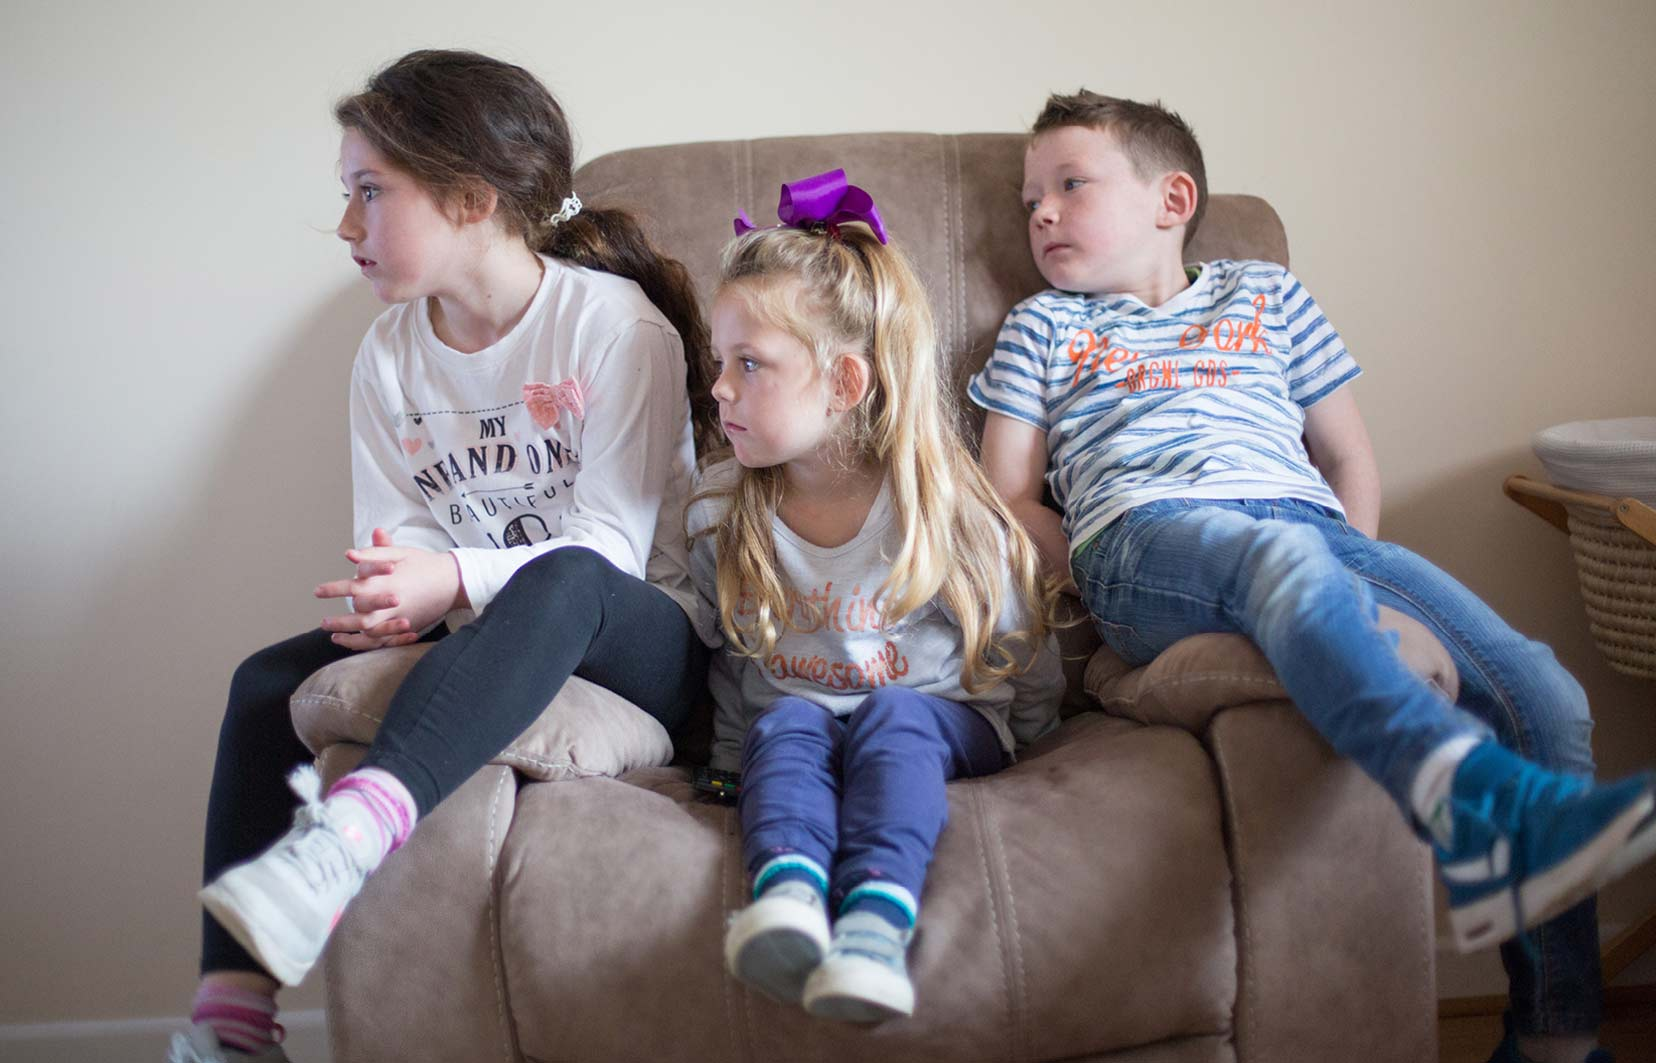 Novas video and photography production. Image of 2 girls and 1 boy on an armchair.